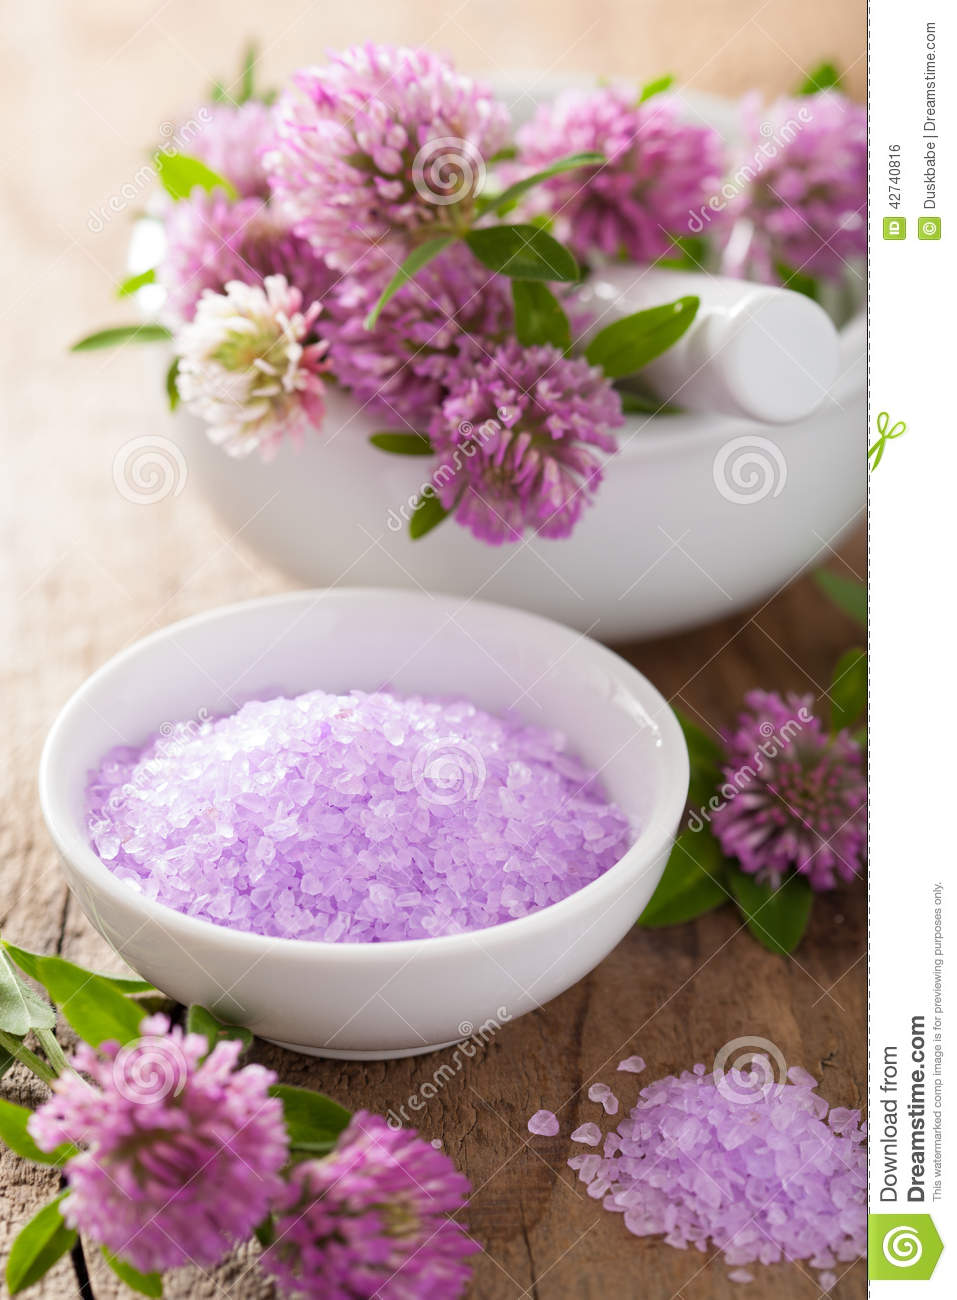 Spa With Purple Herbal Salt And Clover Flowers Stock Photo ...